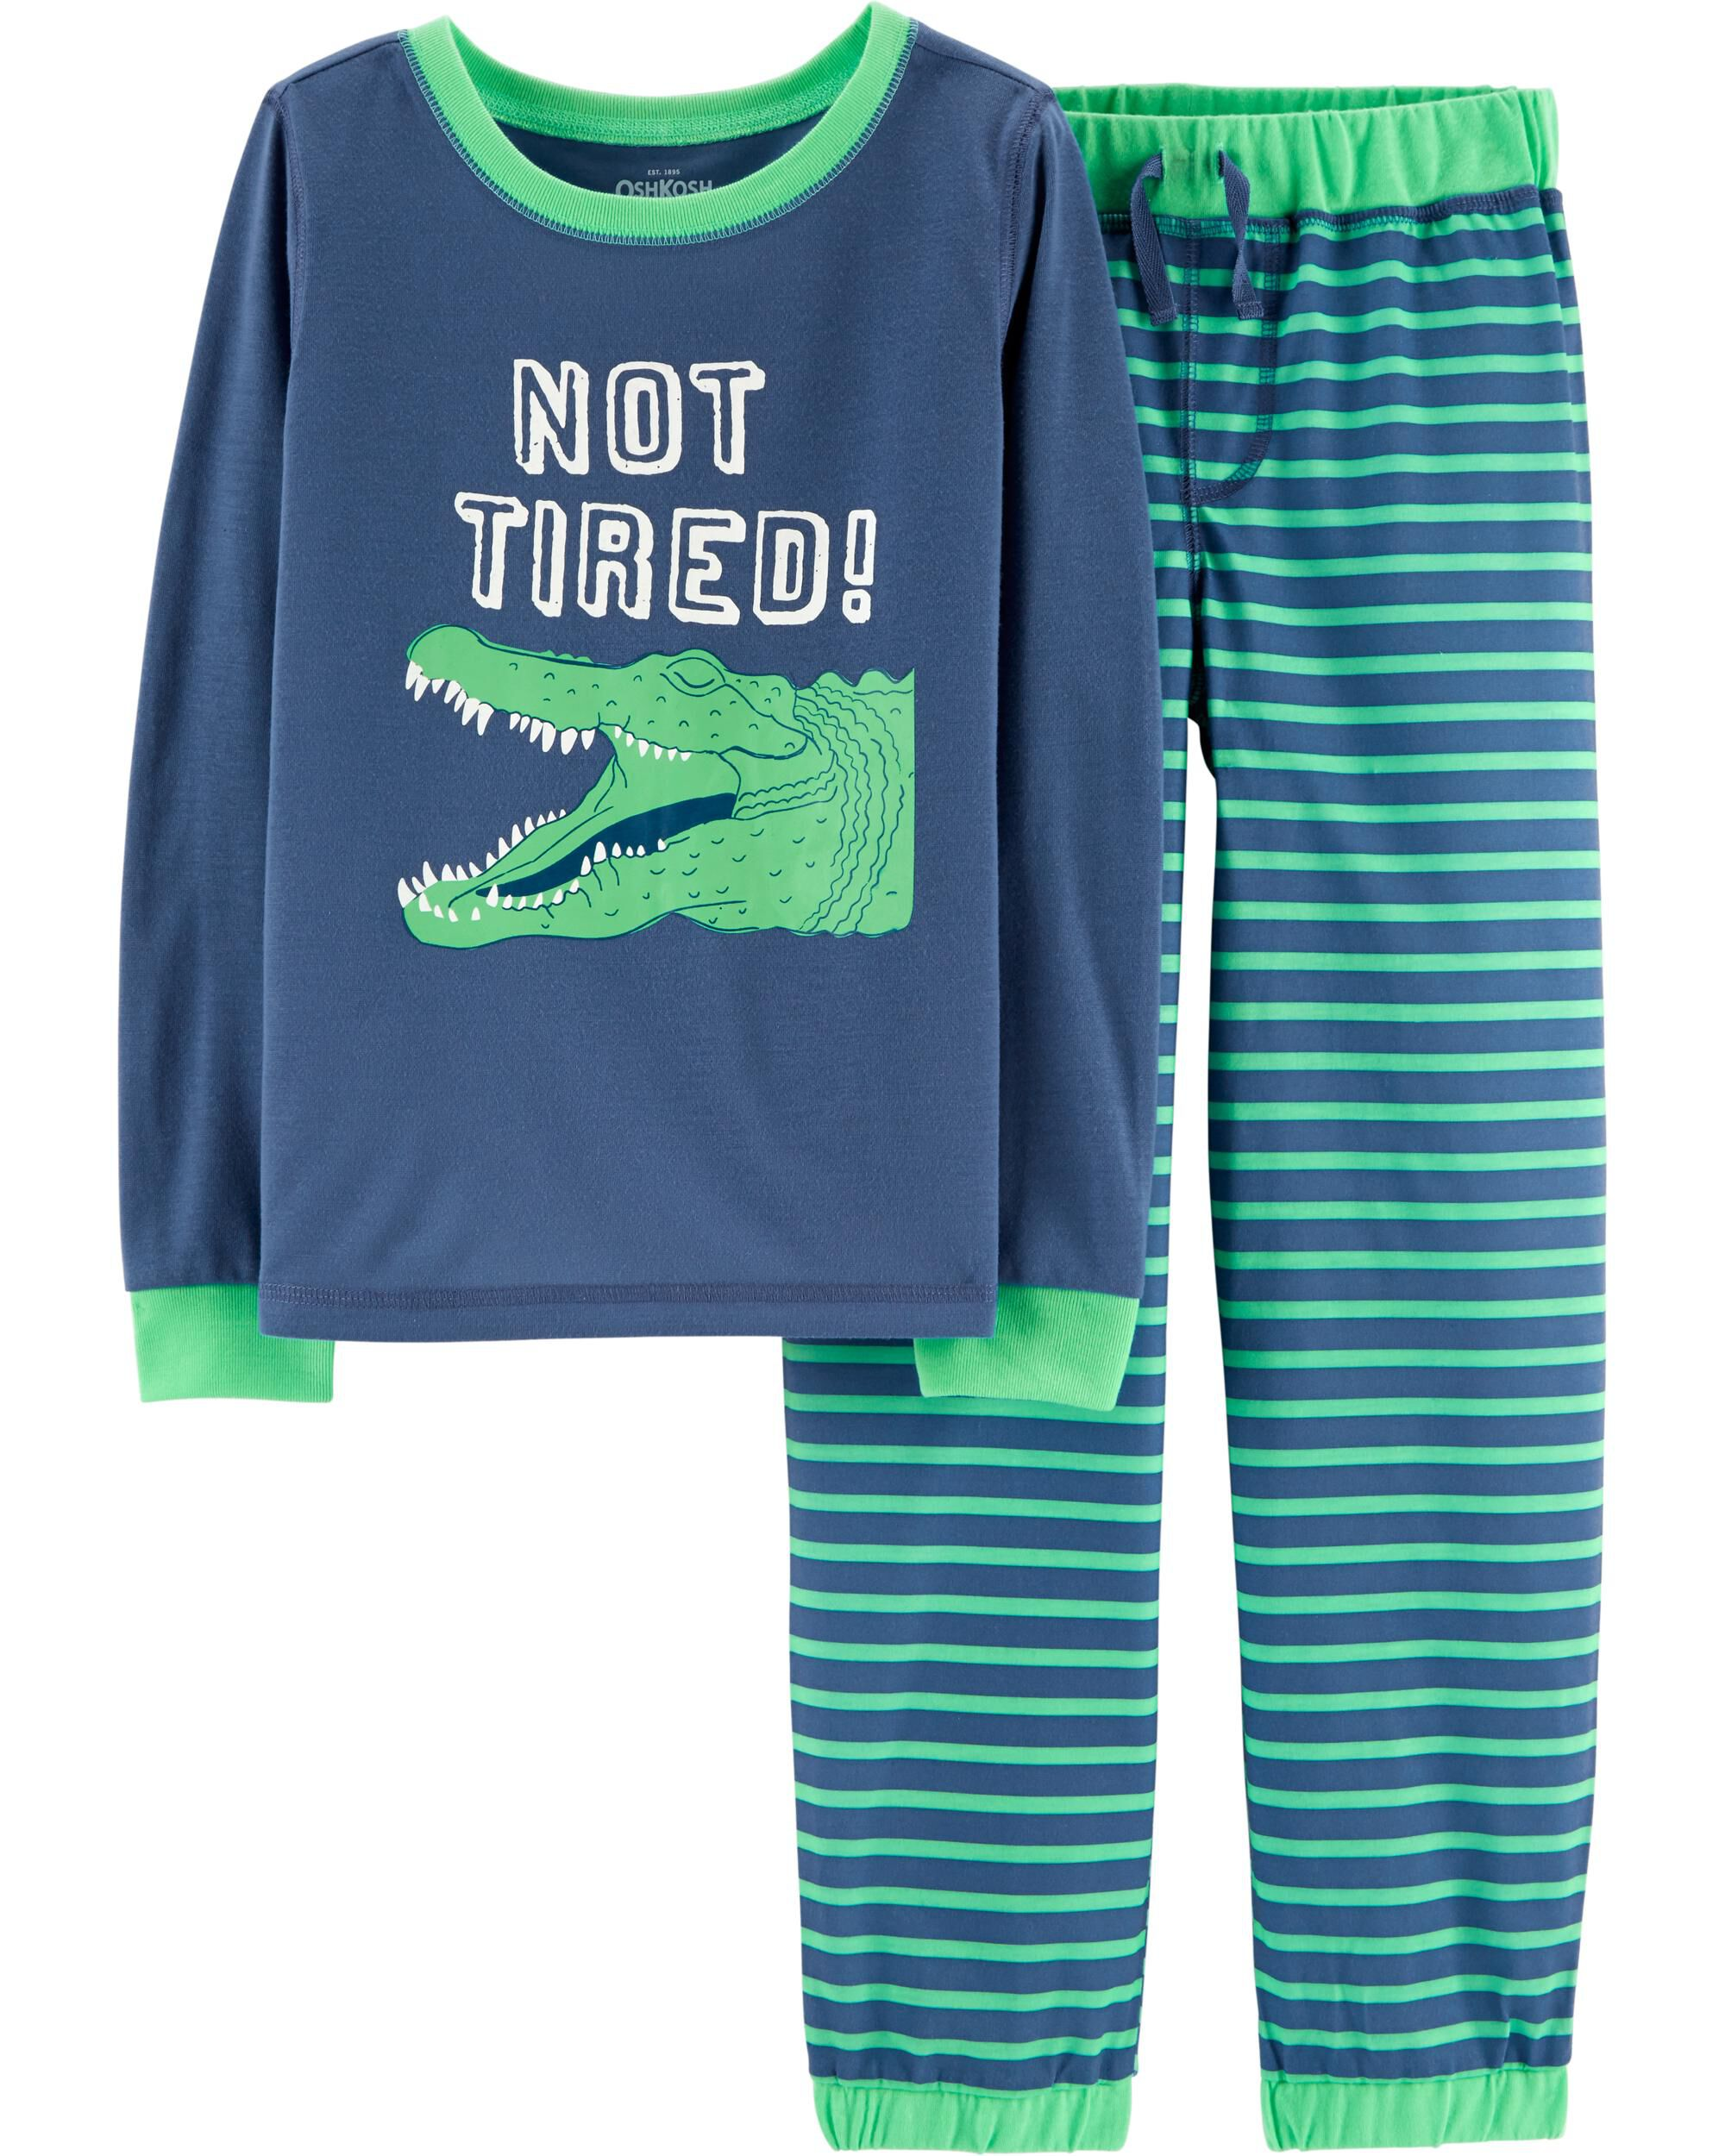 8ac1faf05 2-Piece Alligator PJs